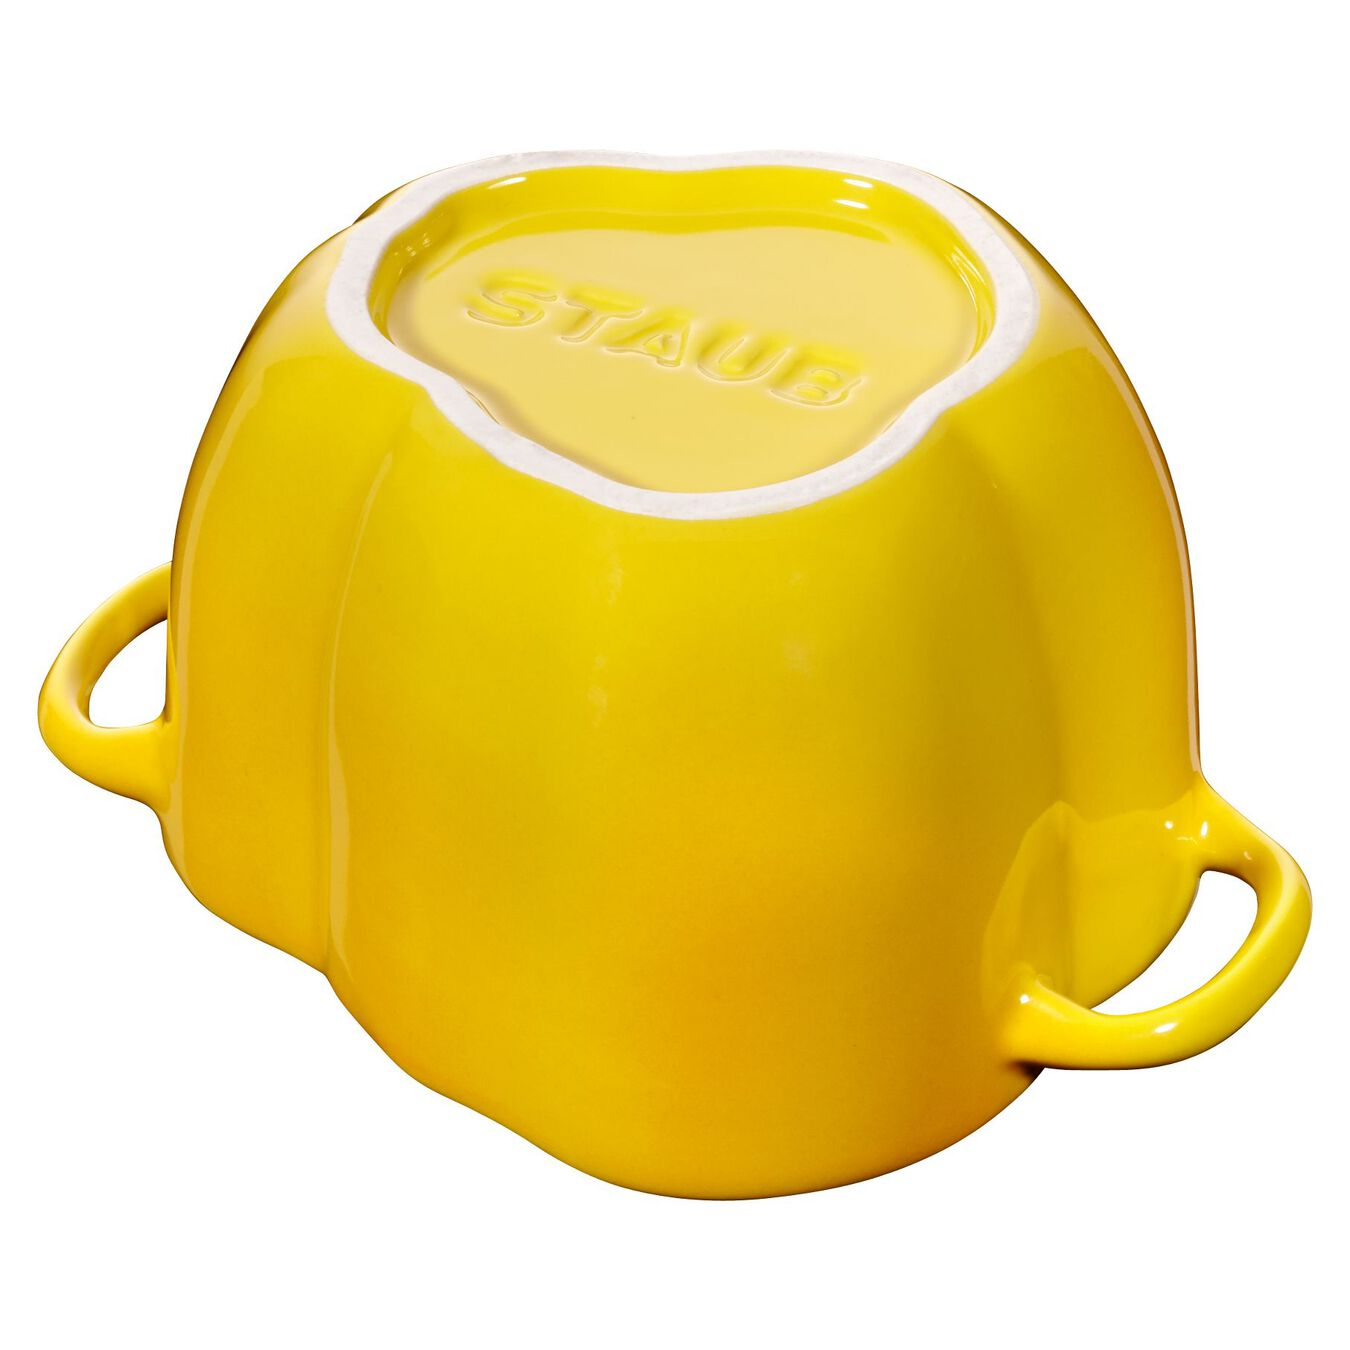 450 ml pepper Cocotte, yellow,,large 3